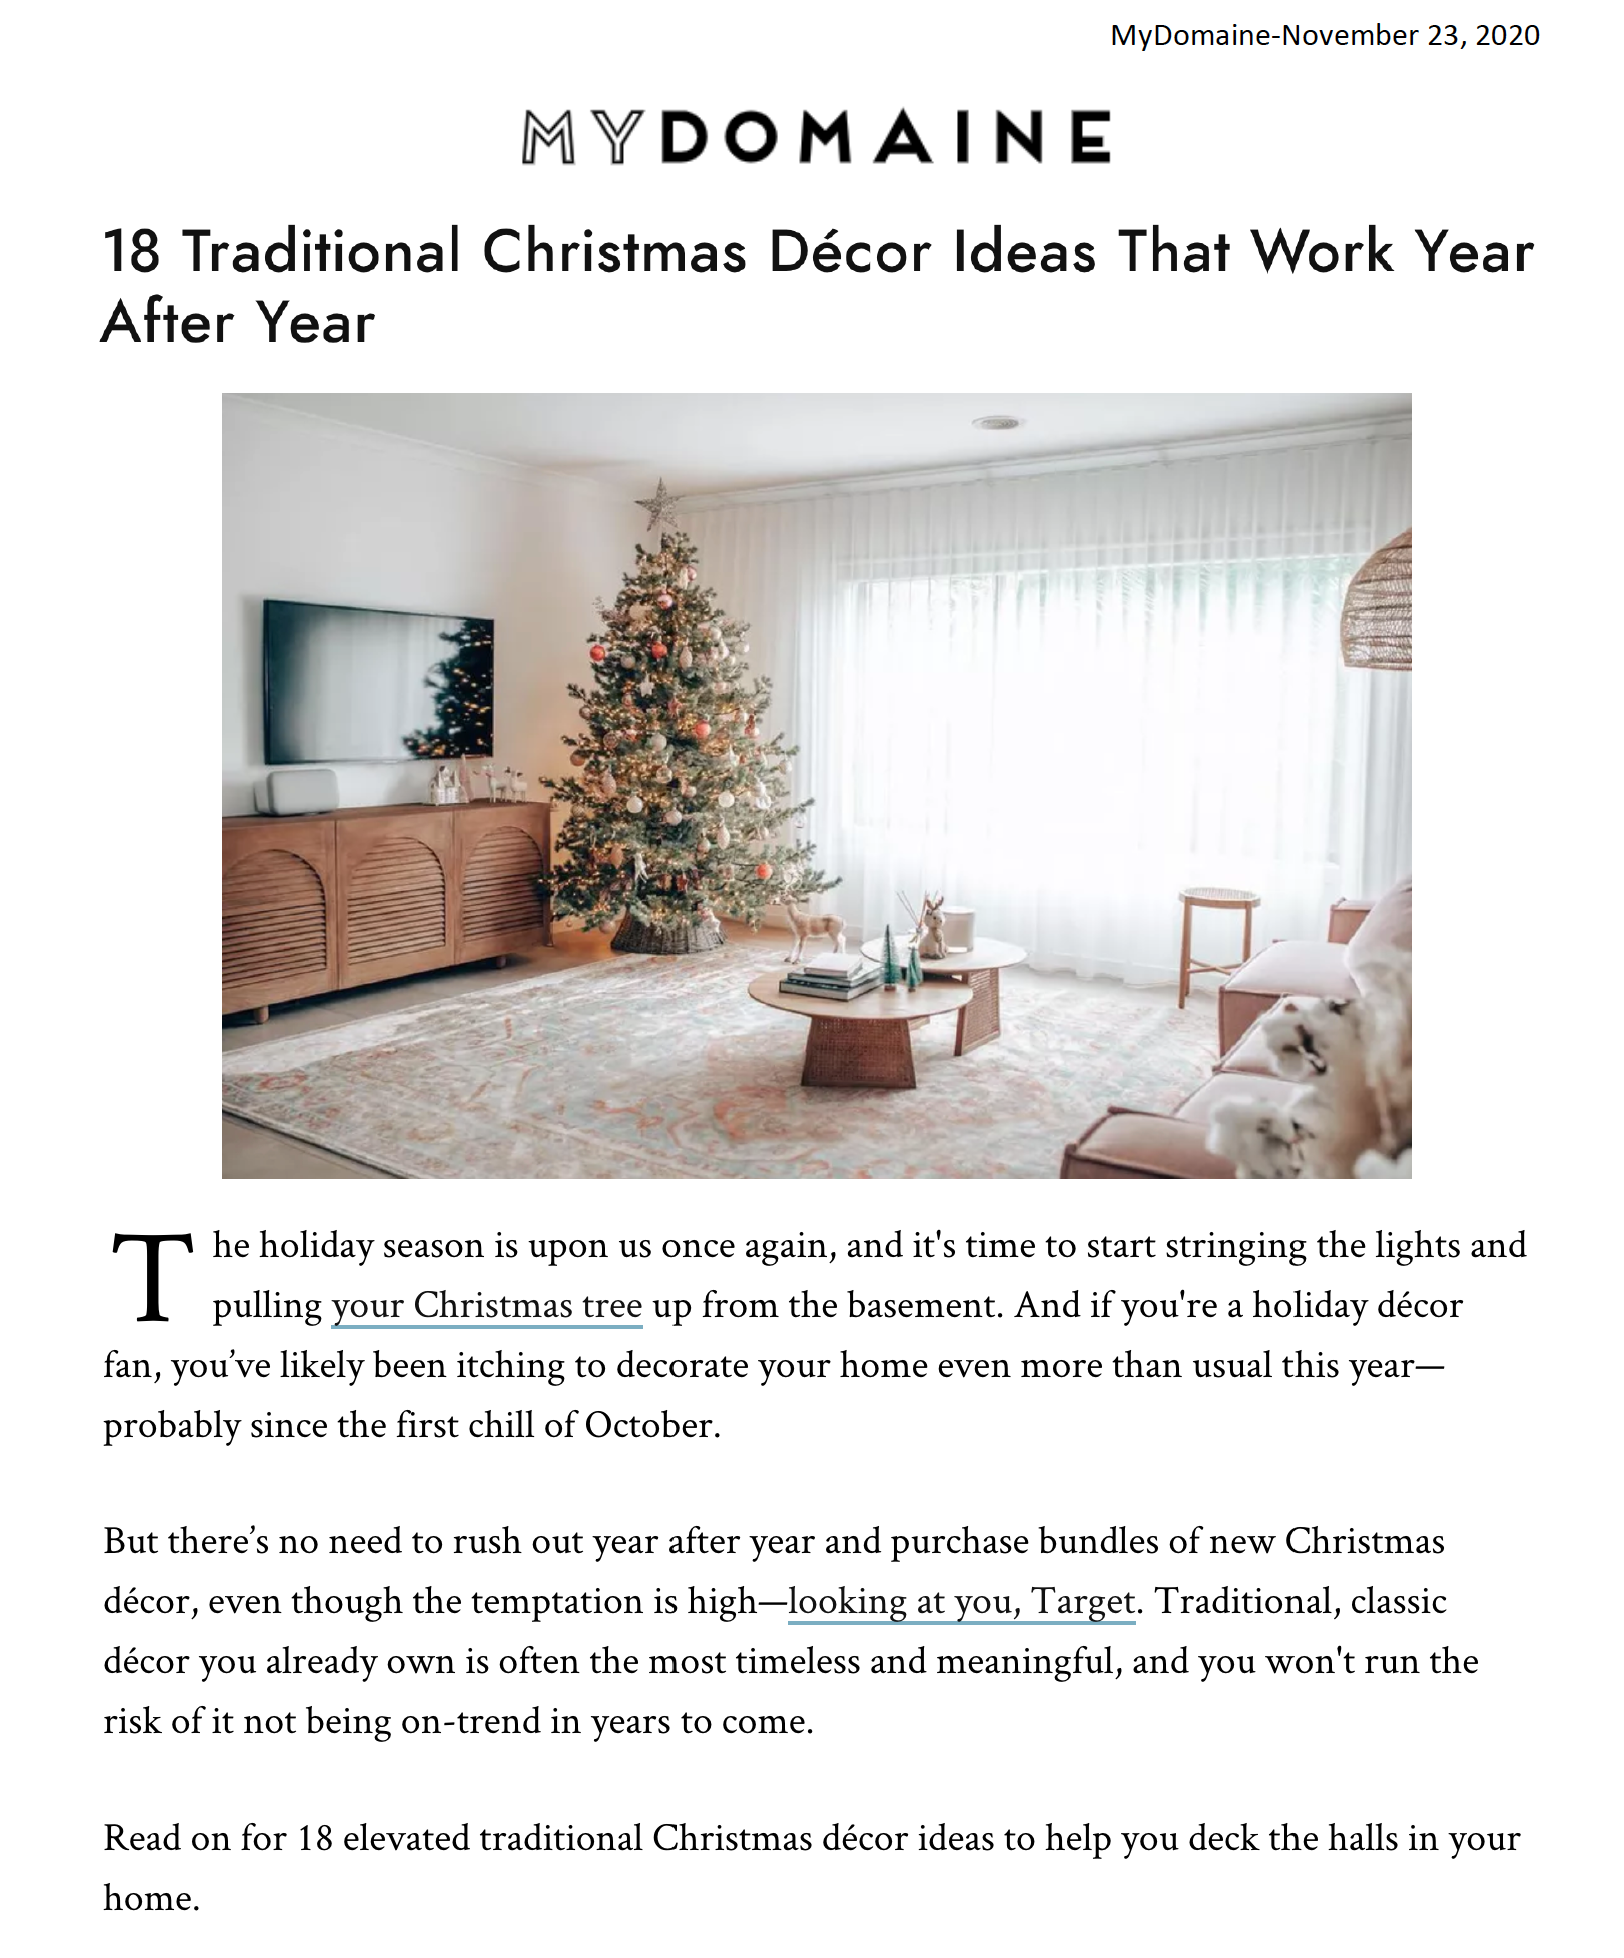 18 Traditional Christmas Décor Ideas That Work Year After Year